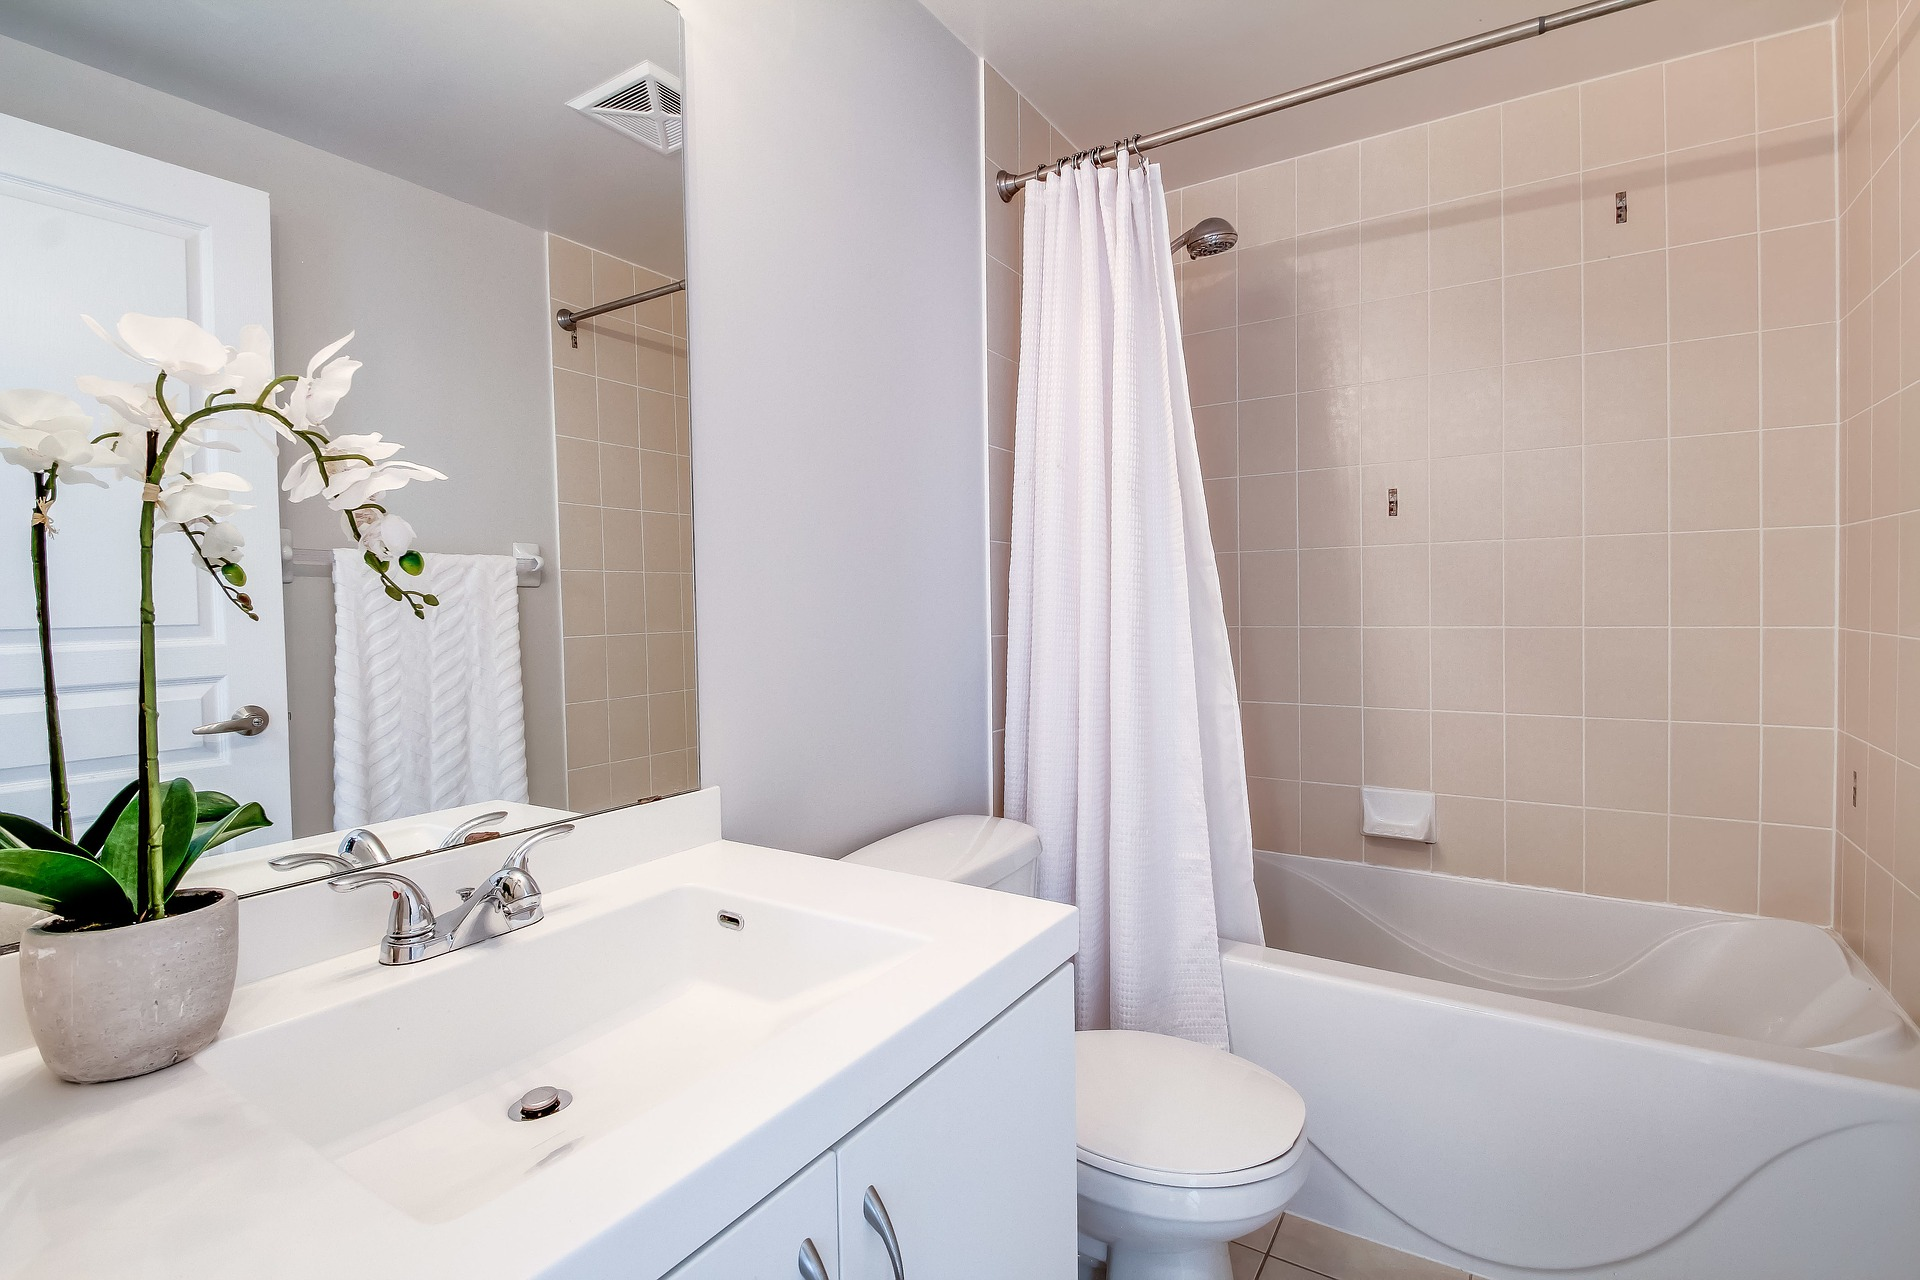 A white bathroom with sink, toilet, faucets and shower tub and brown tile with a flower on the counter on the One Stop Plumbing Faucets, Toilets & Sinks page